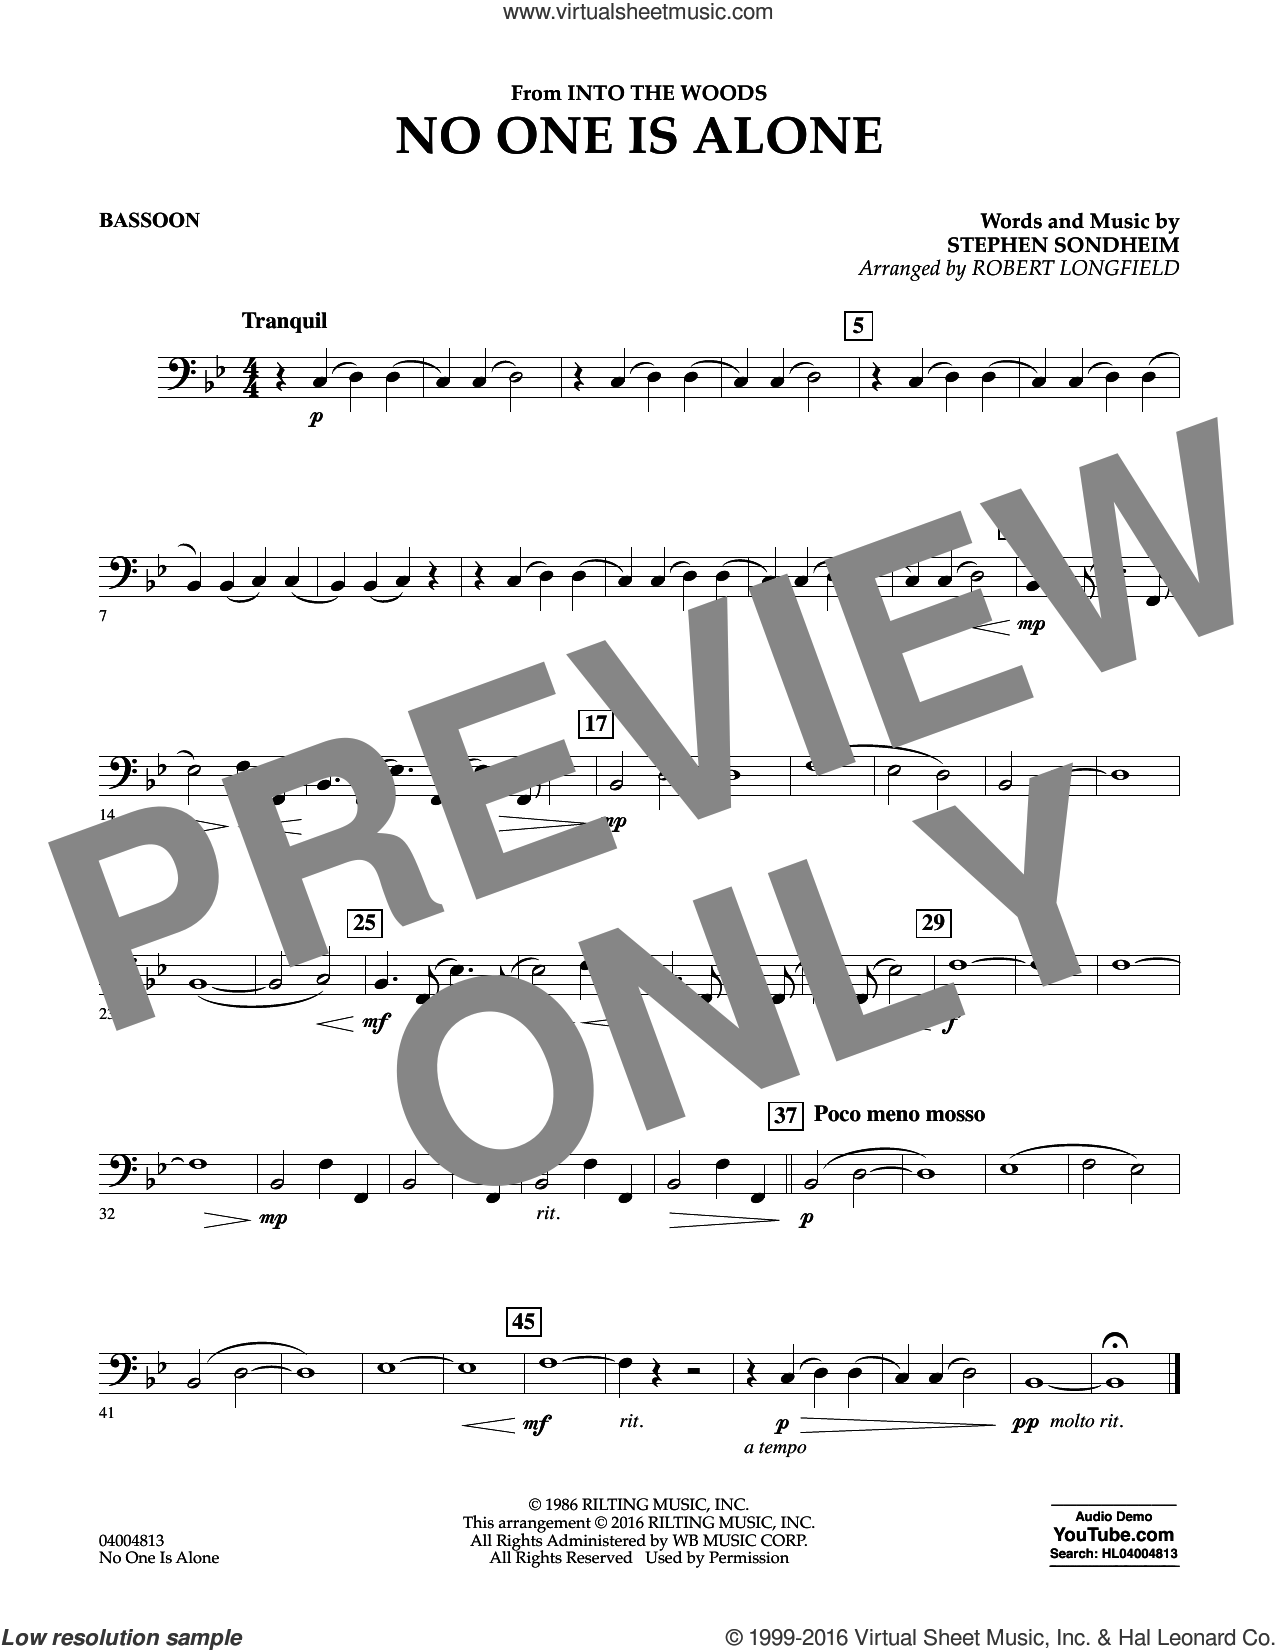 No One Is Alone sheet music for concert band (bassoon) by Stephen Sondheim and Robert Longfield, intermediate skill level